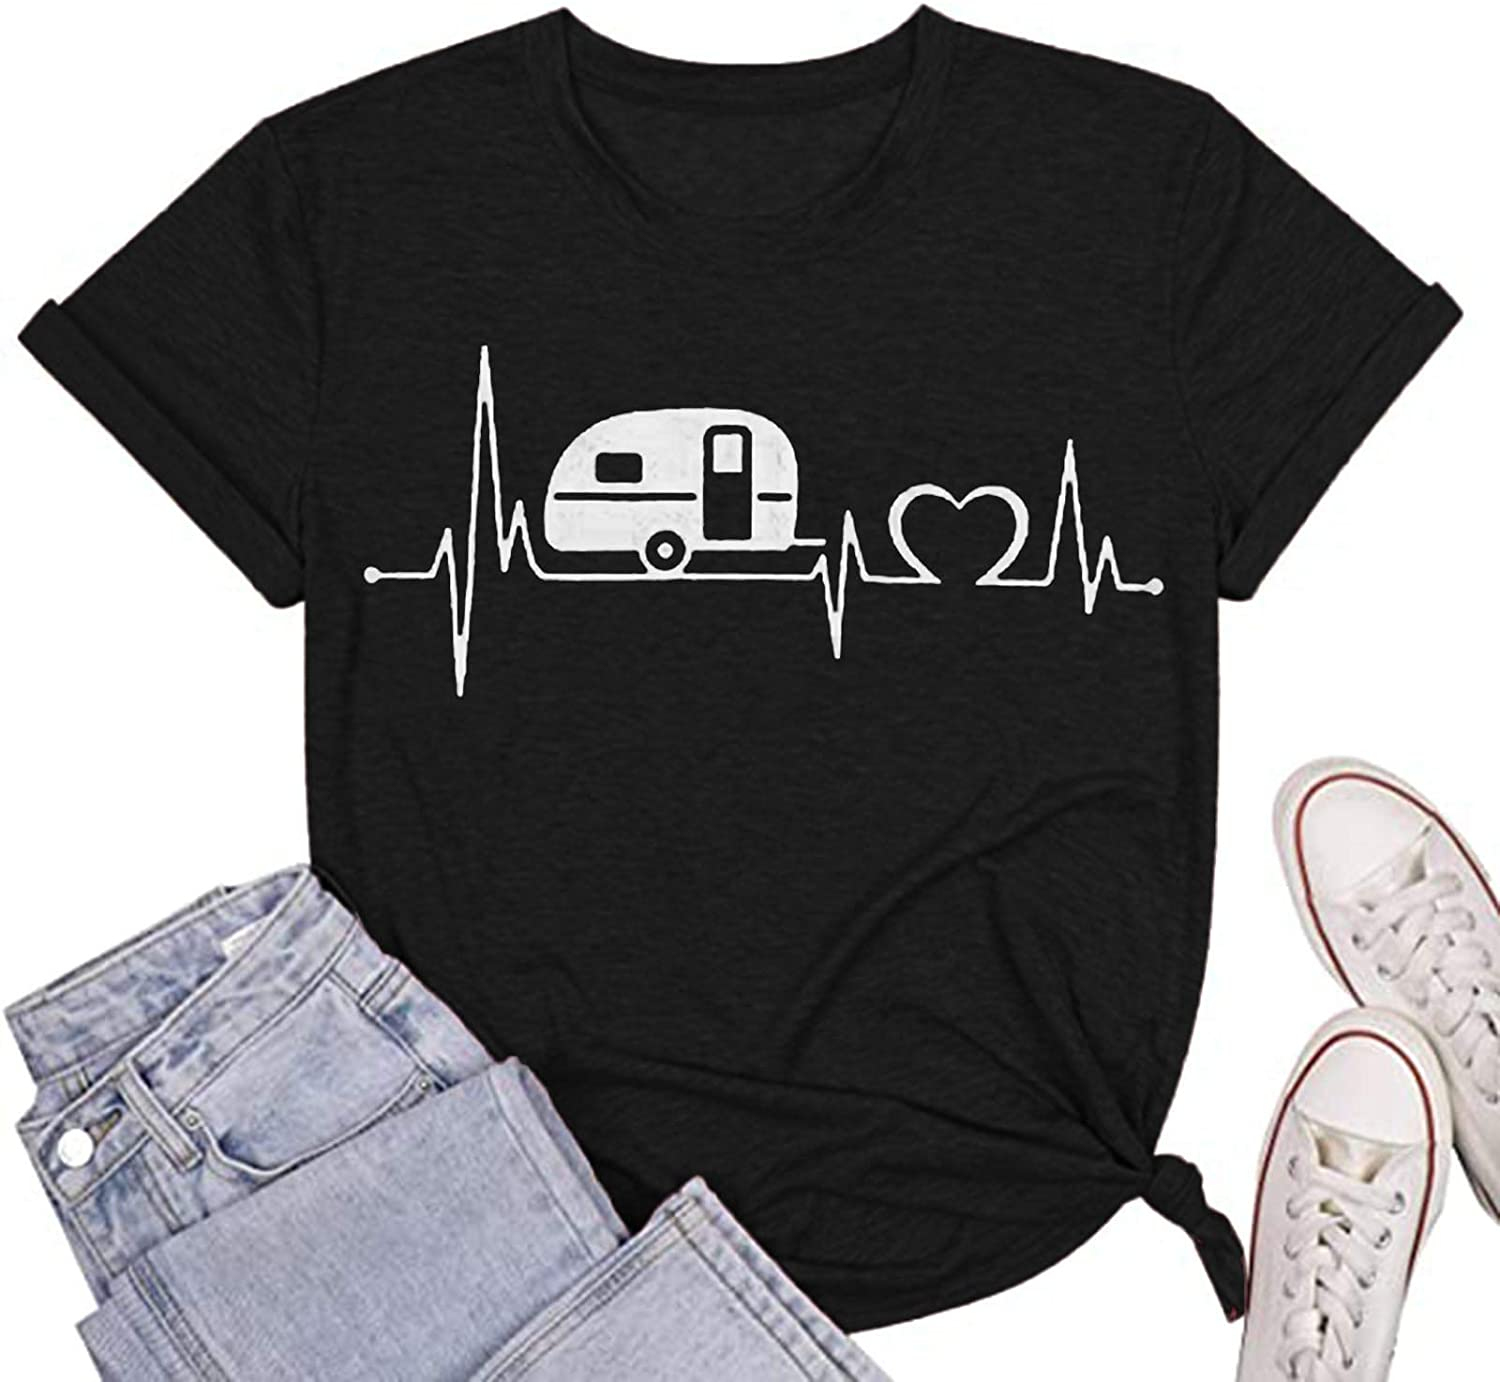 Graphic Tees for Women 5 ☆ popular Vintage Shi Tampa Mall Sleeve Heartbeats Short Print